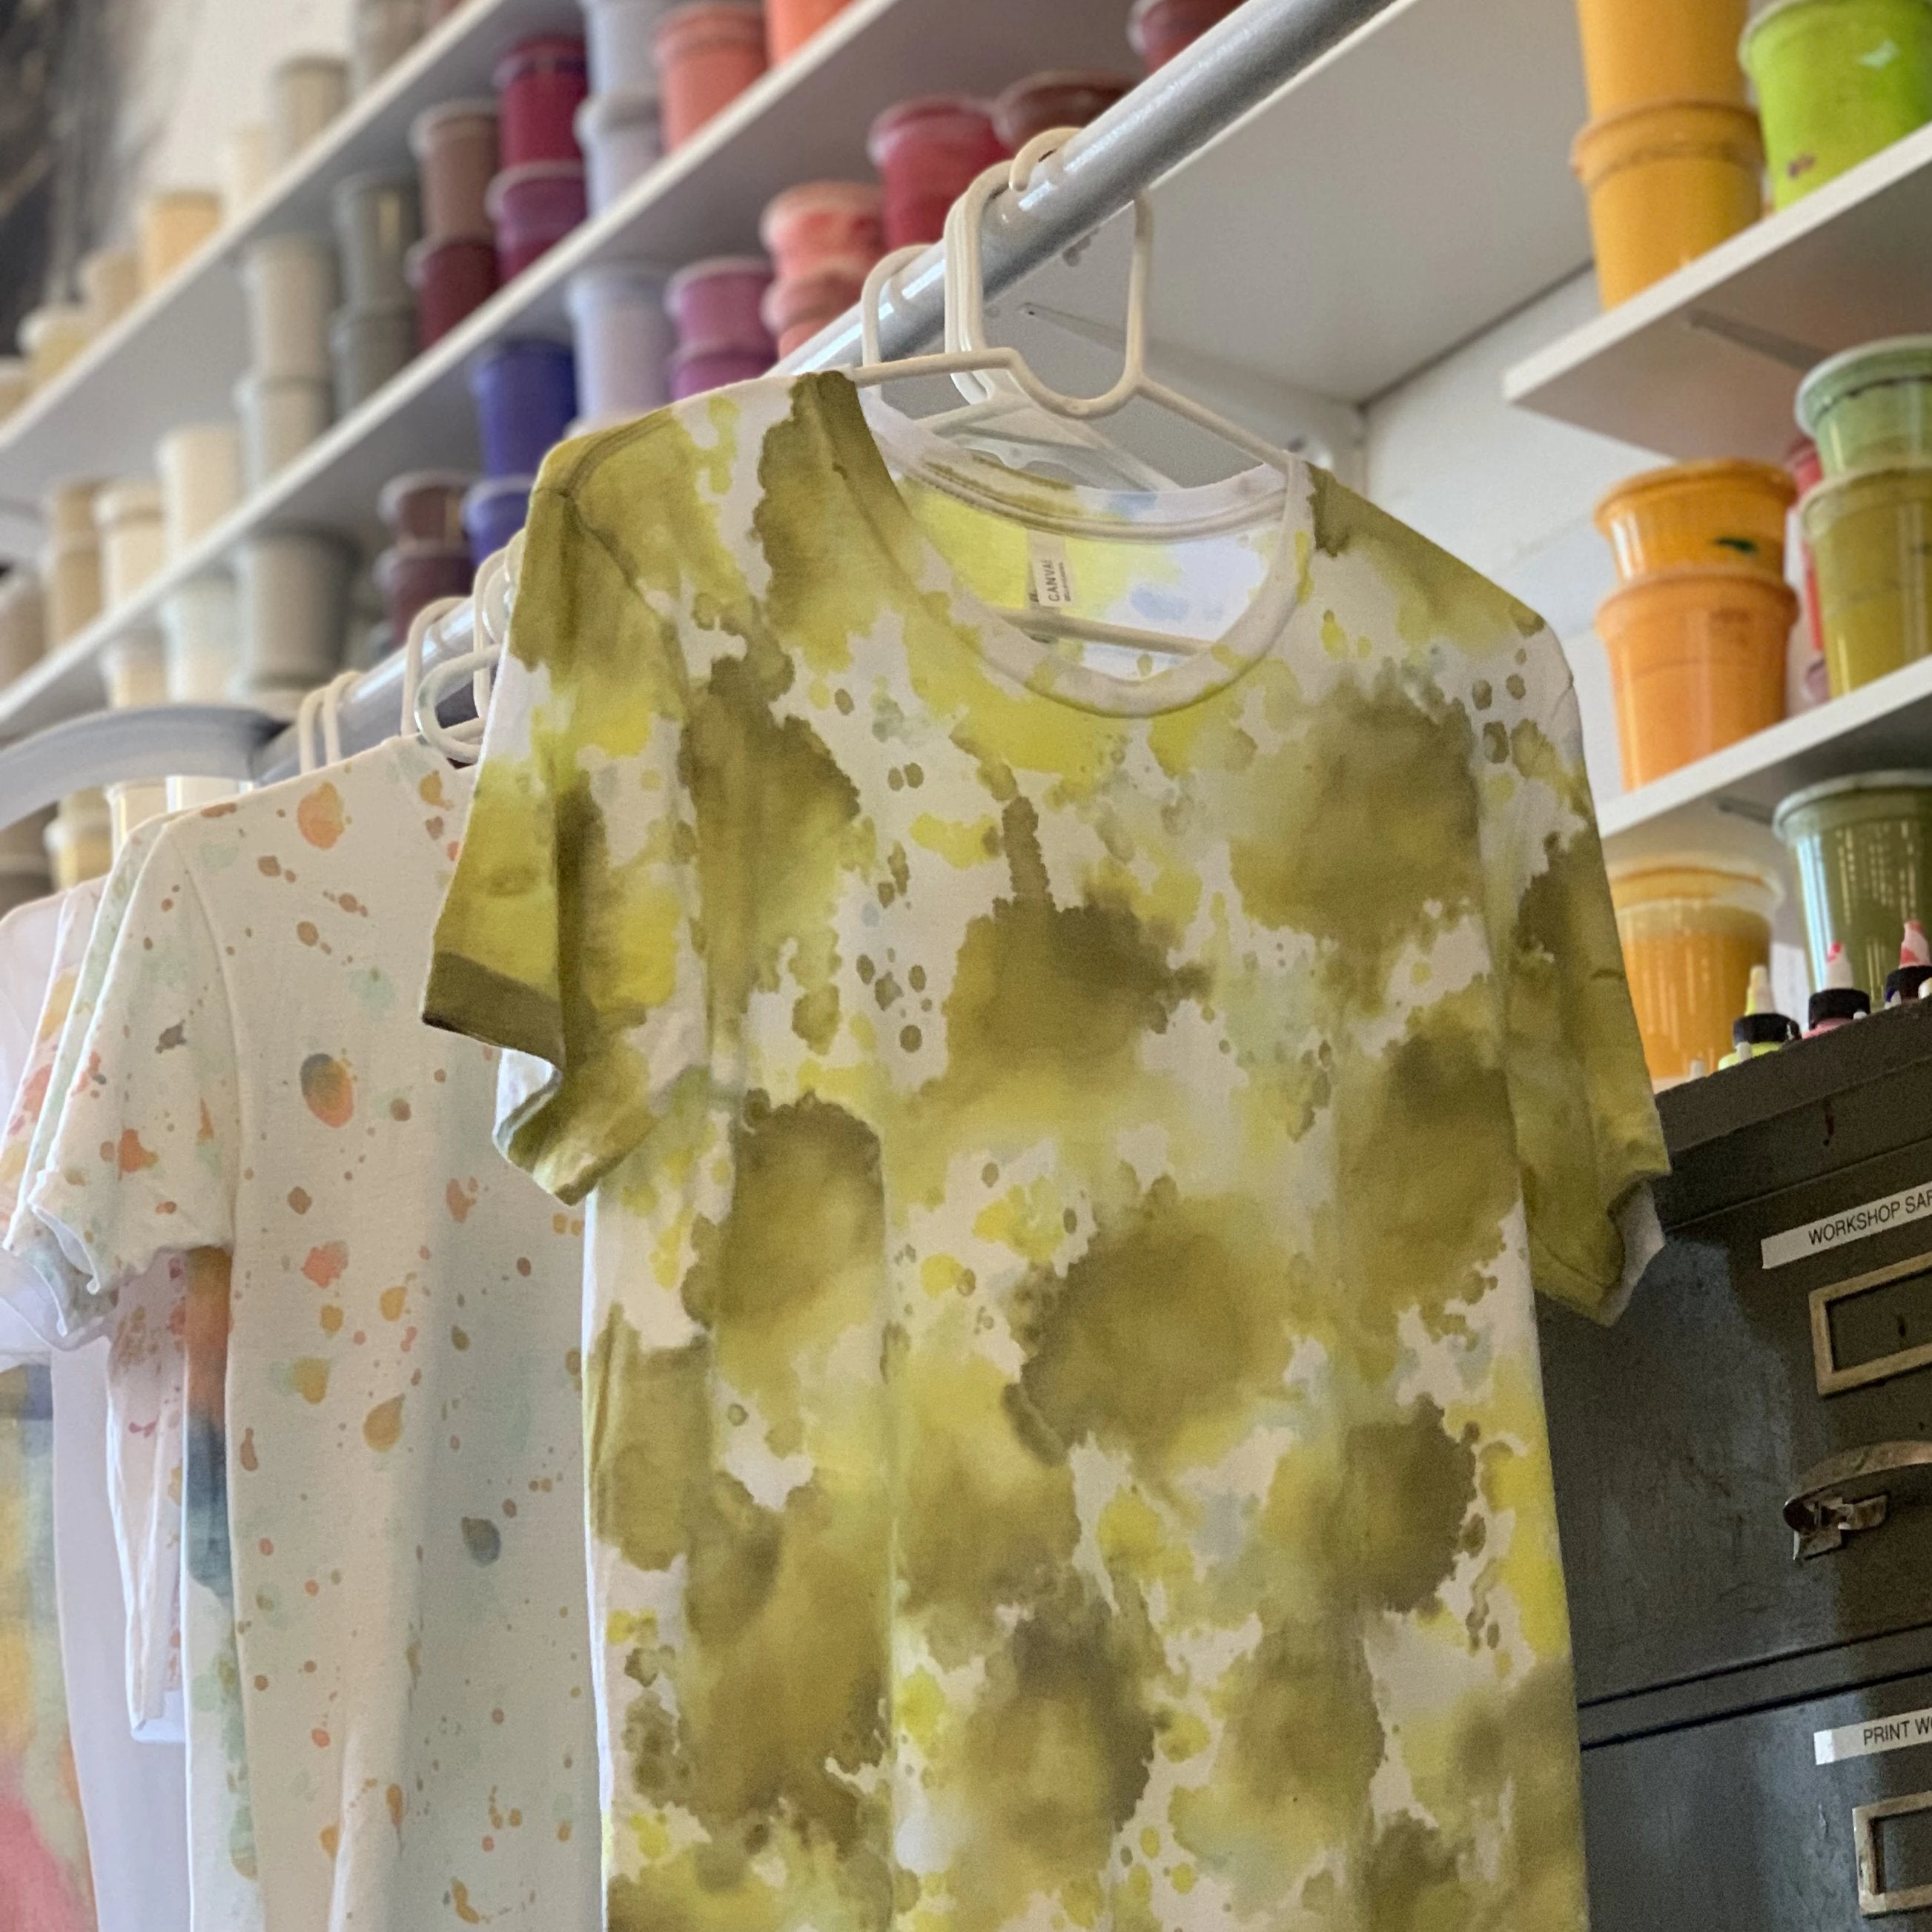 01/25 T-shirt Painting Workshop: Hand-Painted T-shirts on Saturday January 25 at 10:30am